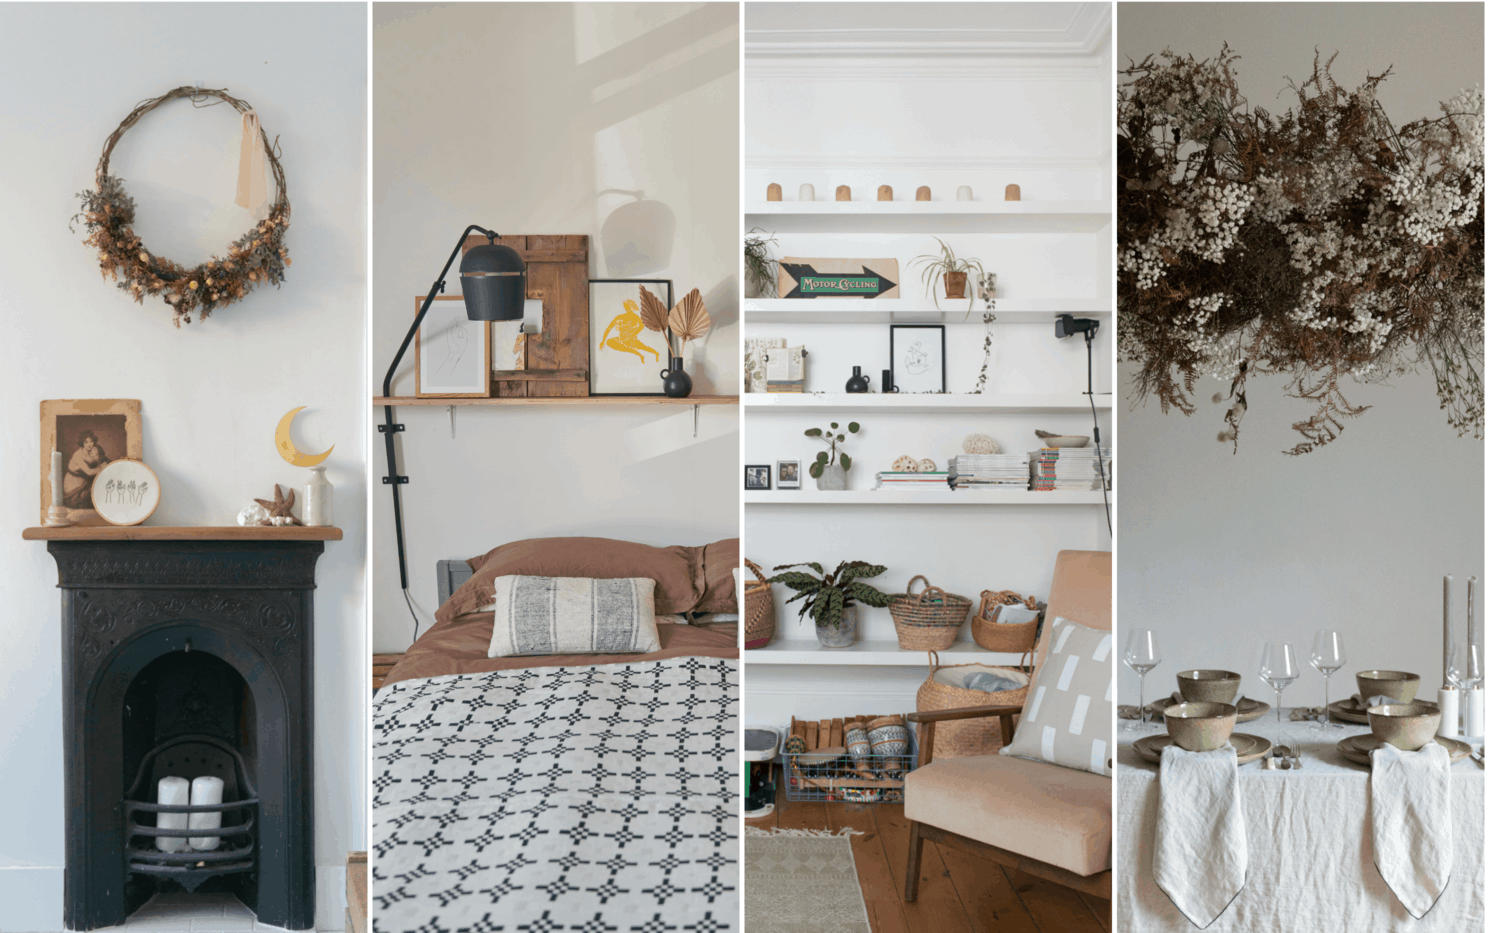 Winter Styling: At Home with Han Bullivant